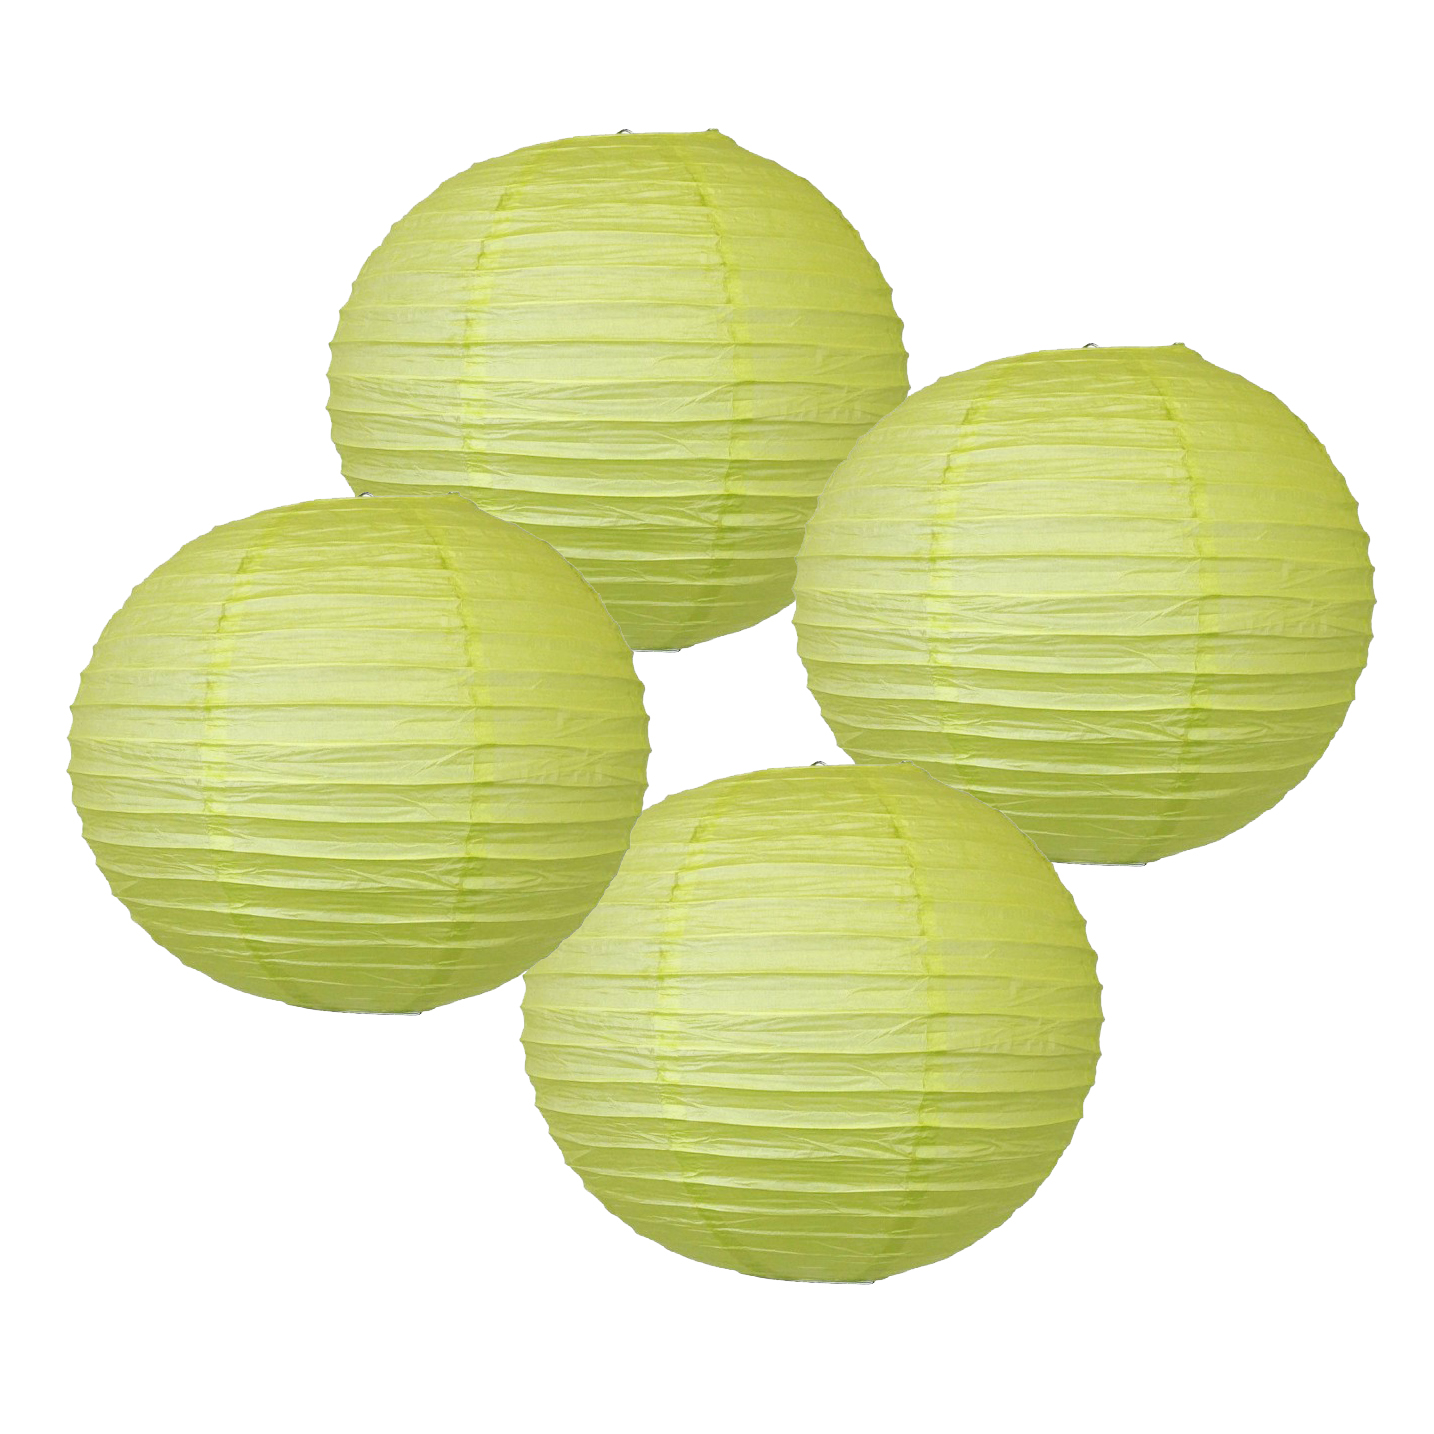 "20"" Pistachio Green Chinese Japanese Paper Lanterns (Set of 4) - Decorative Round Chinese/Japanese Paper Lanterns for Birthday Parties, Weddings, Baby Showers, and Life Celebrations!"